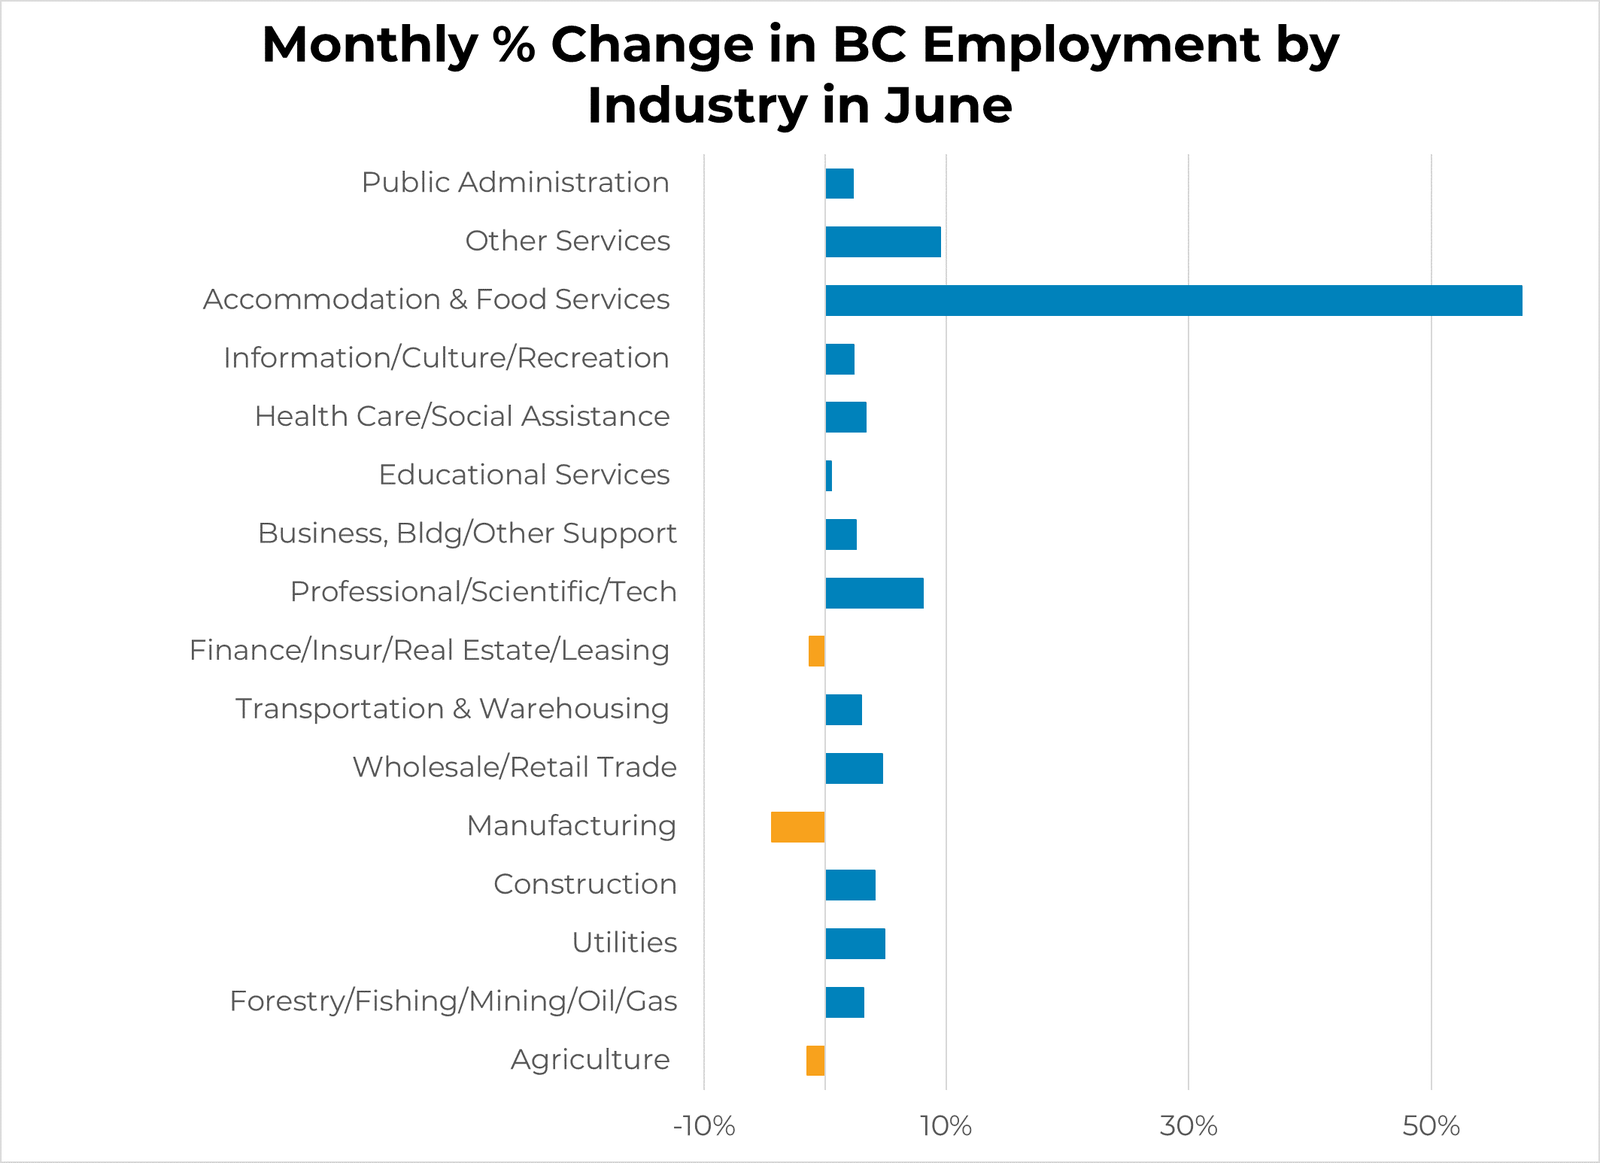 Monthly Employment Change by Industry - June 2020